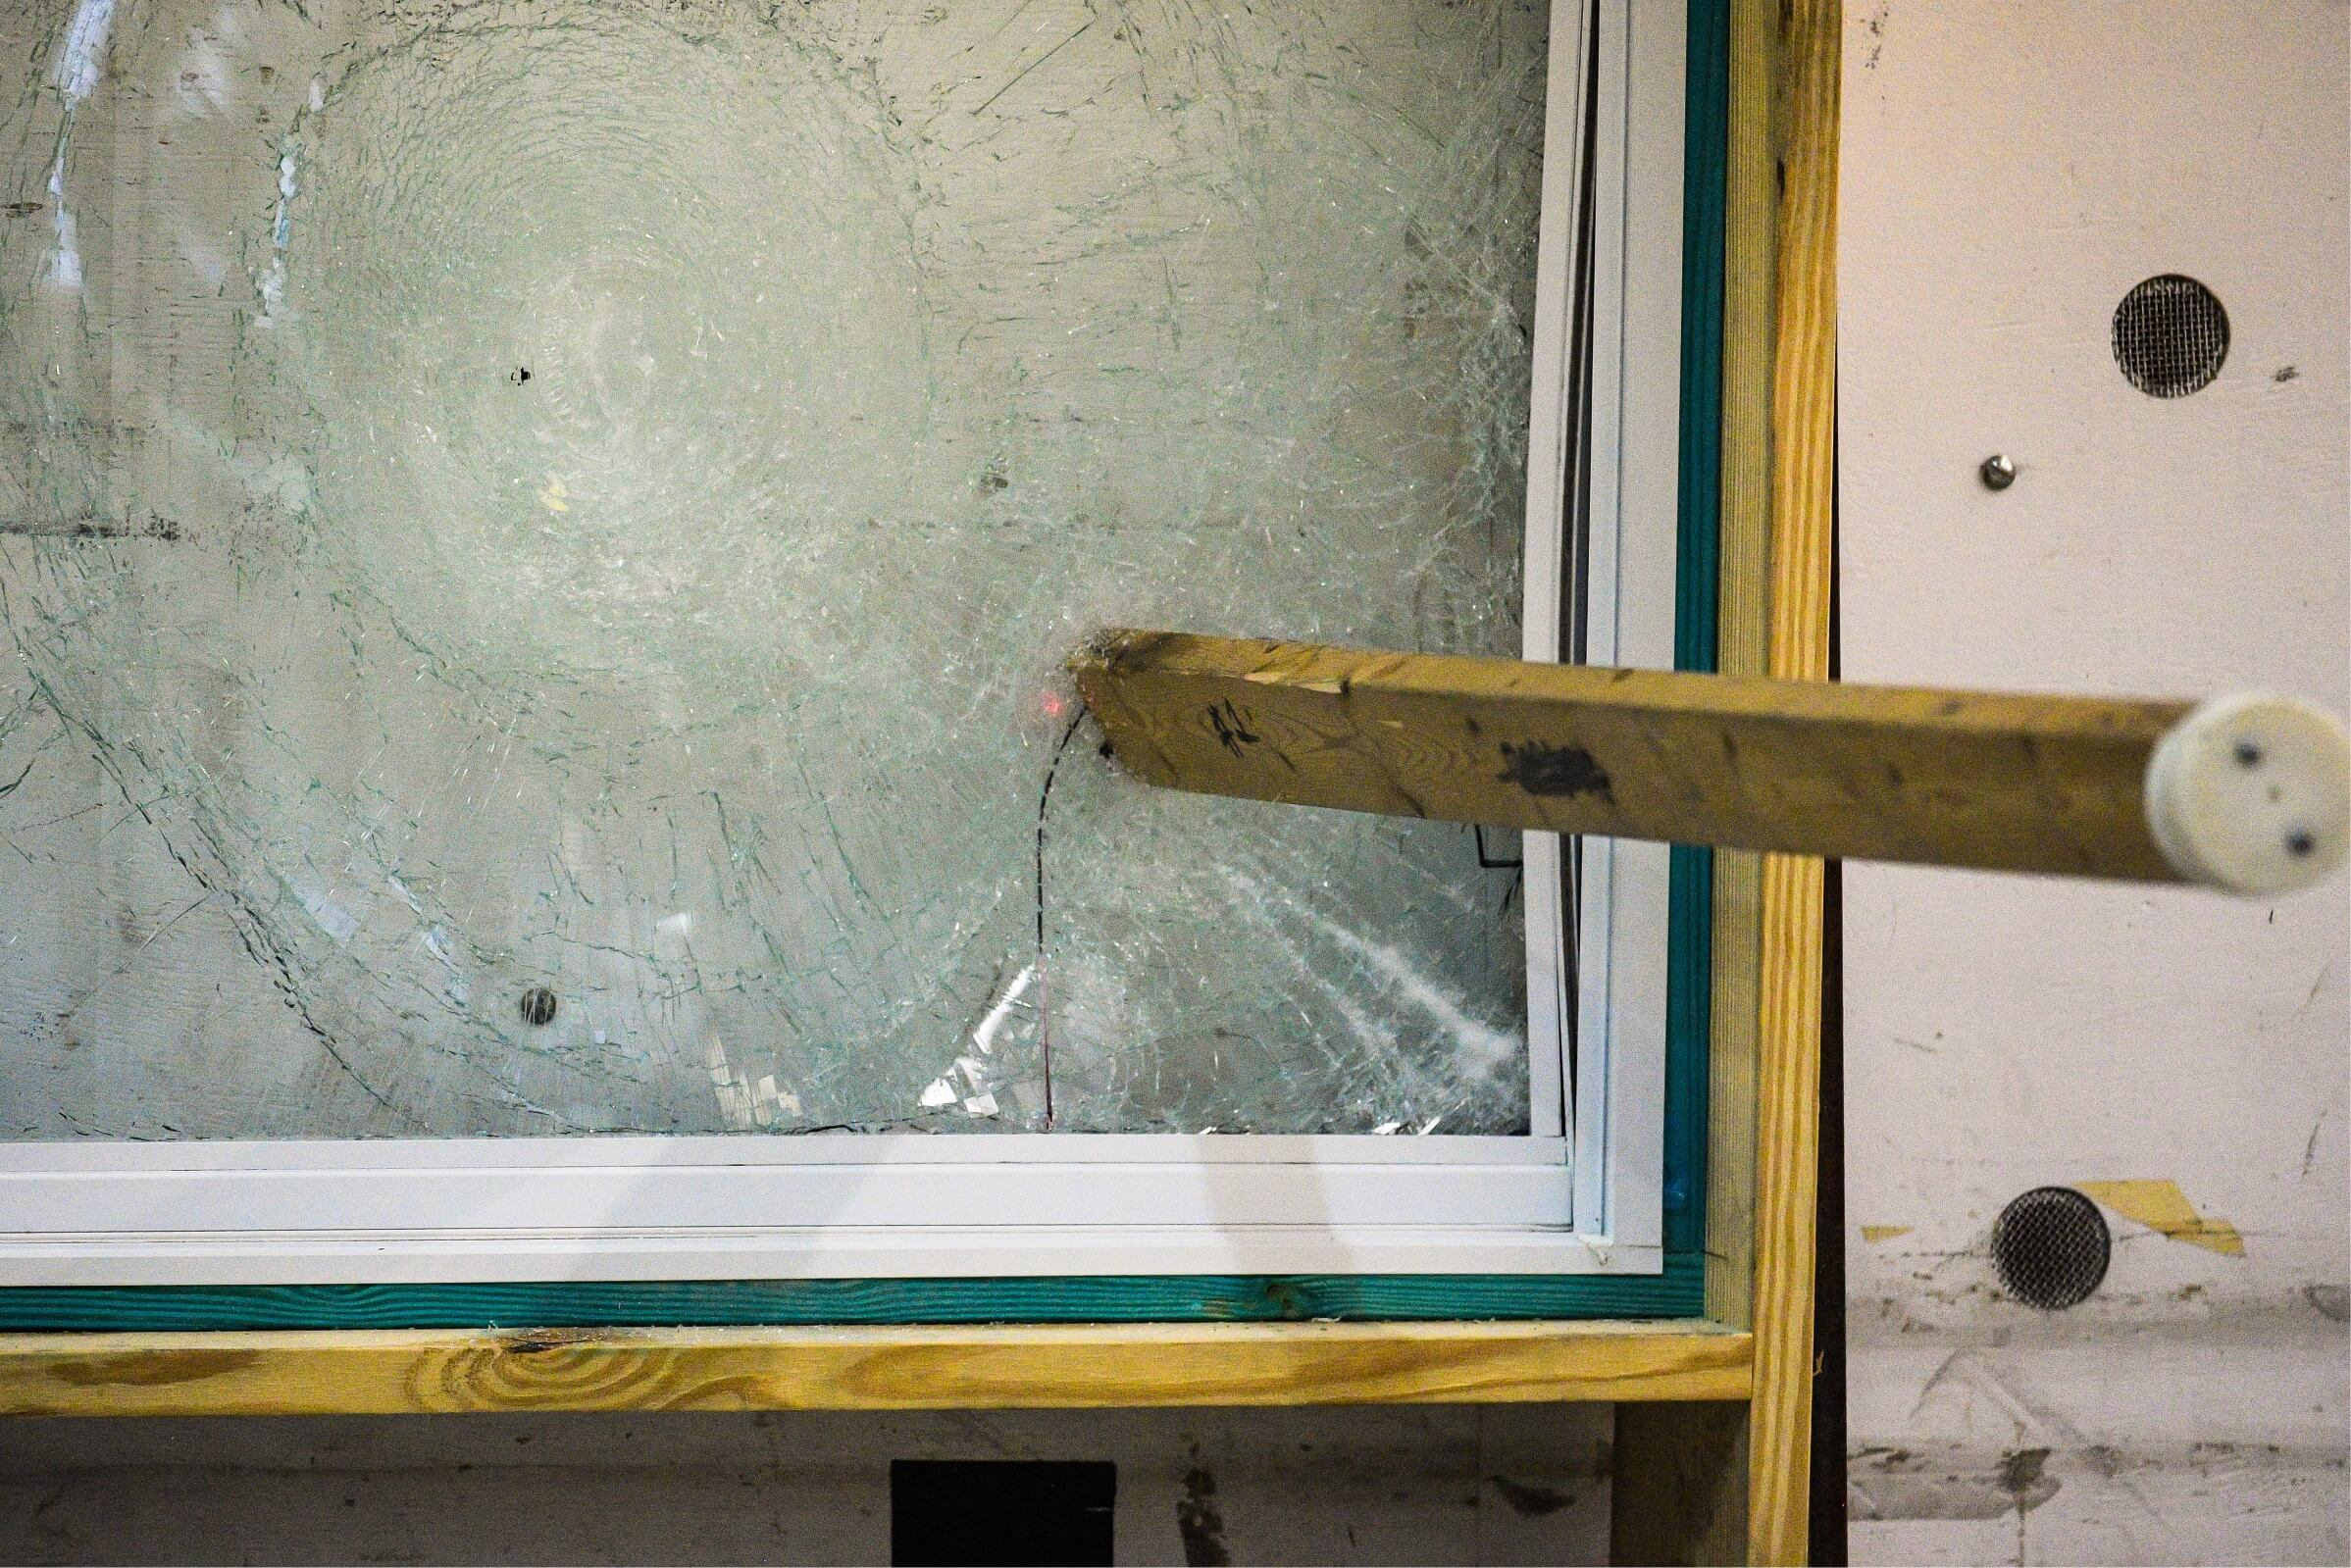 A hurricane impact window being tested for strength